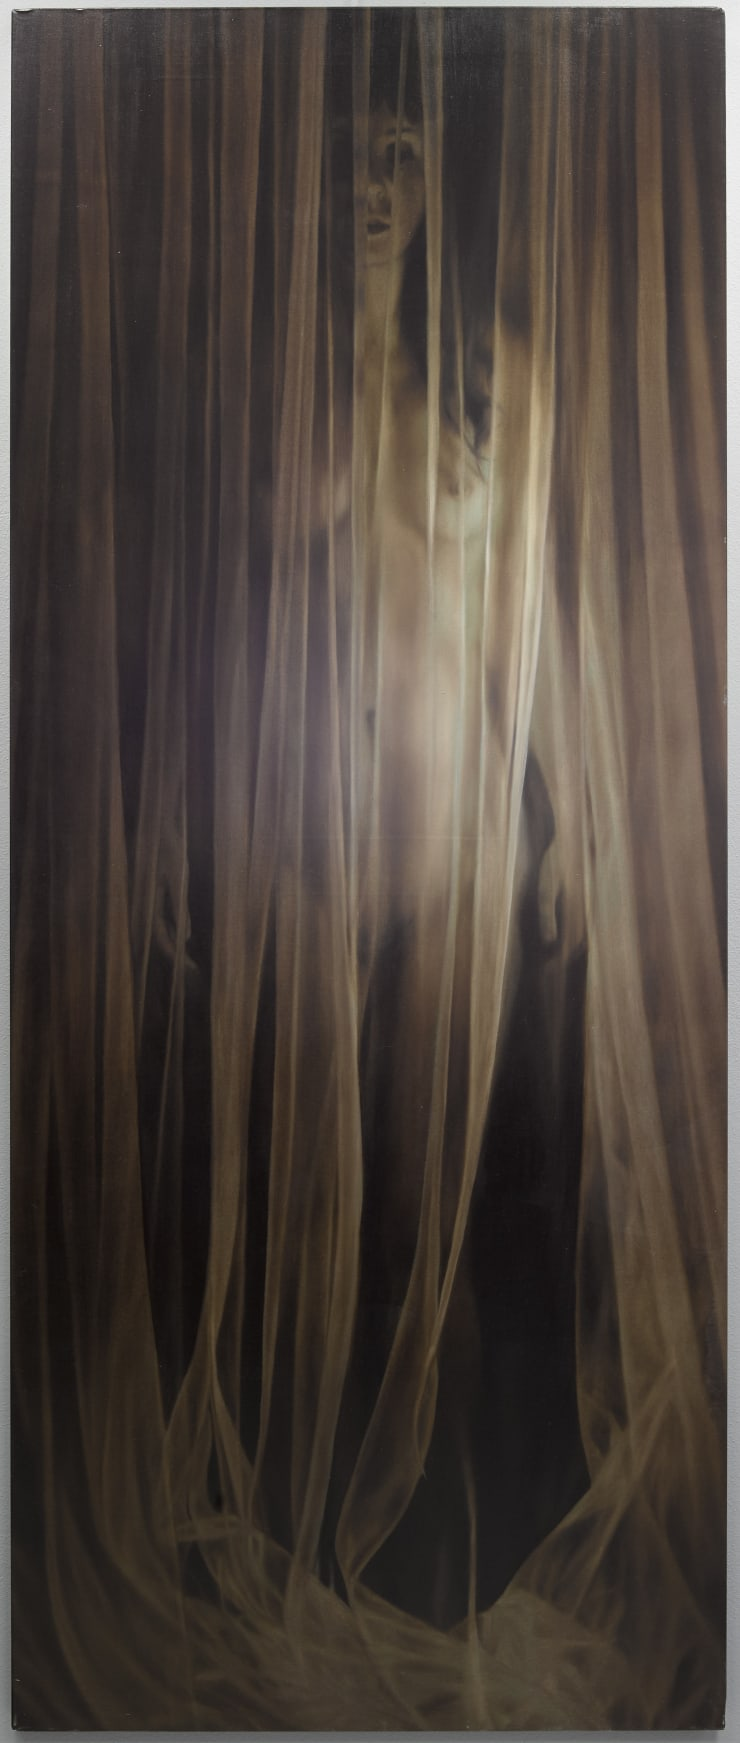 Elisa Rossi Sipario 2, 2017 Oil on canvas 200 x 80 cm 78.7 x 31.5 in